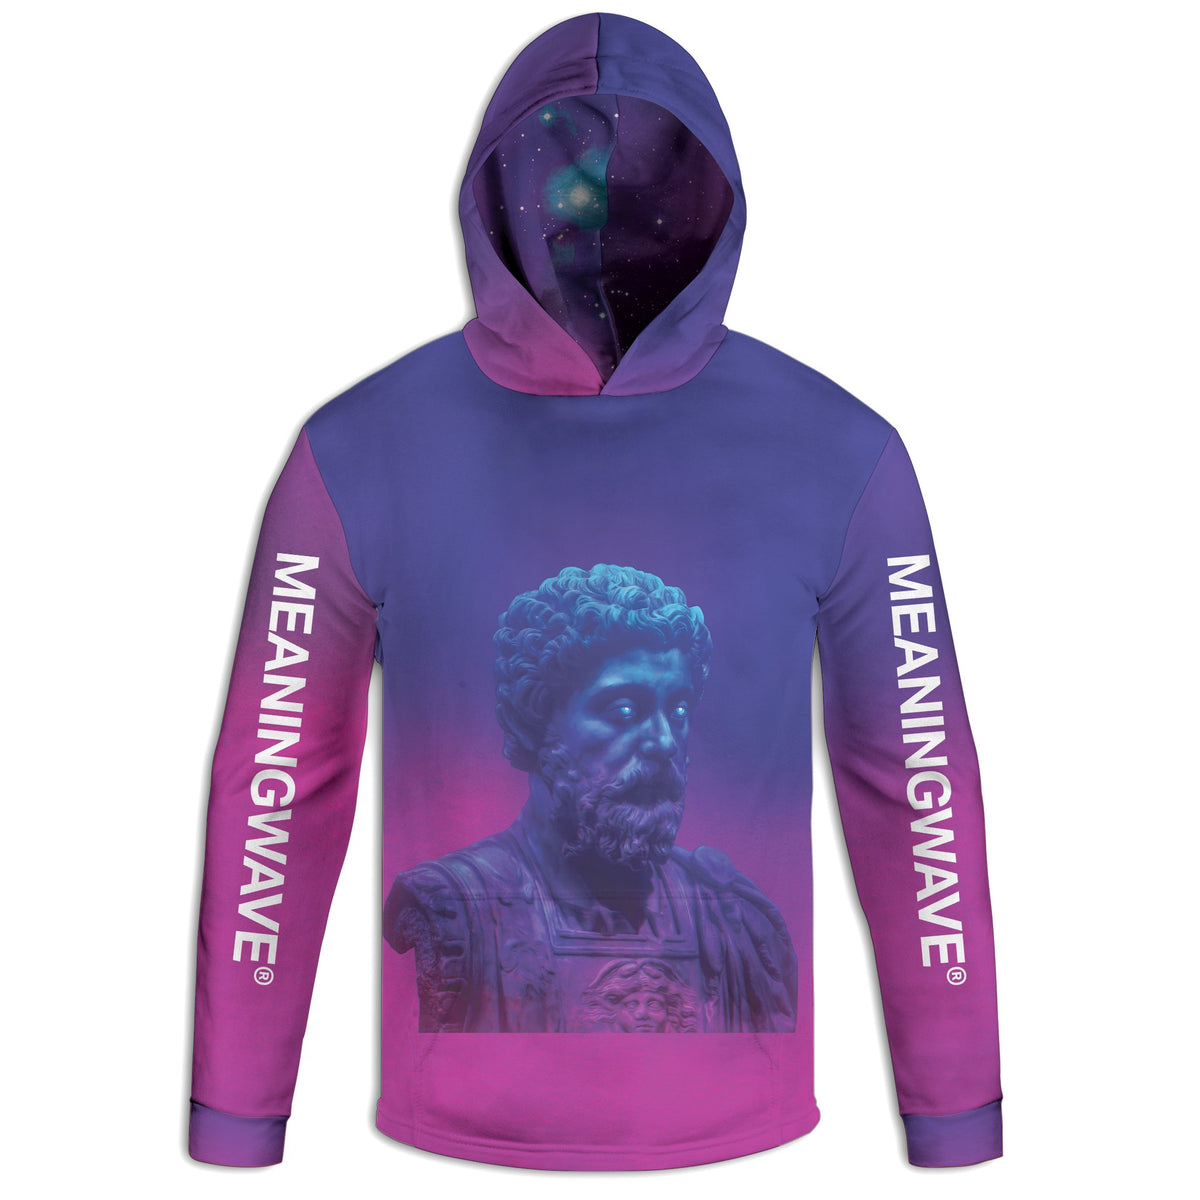 AKIRA THE DON & MARCUS AURELIUS - SELF CONTROL Hoodie | meaningwave.com